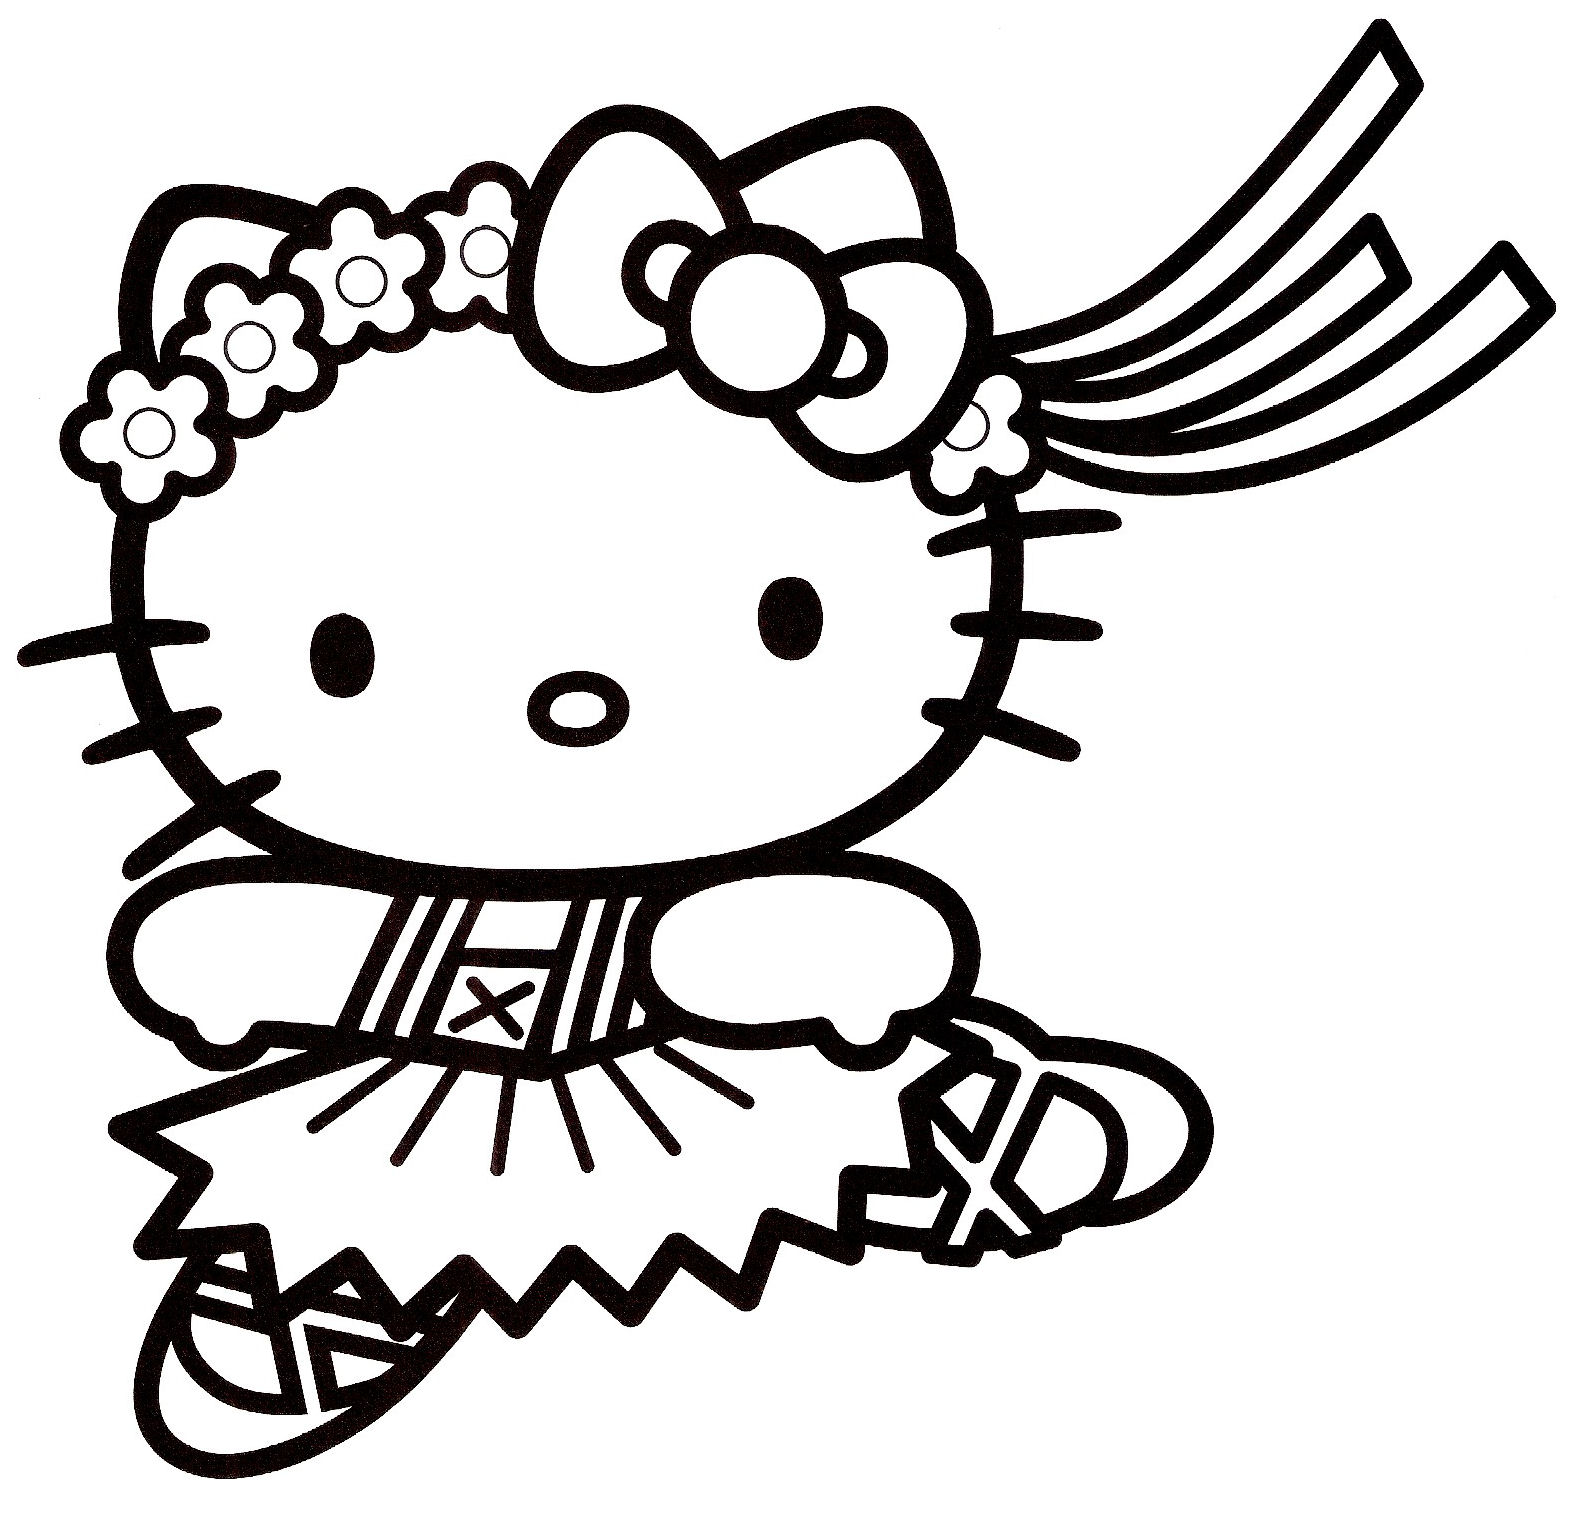 140 dessins de coloriage hello kitty imprimer - Coloriage hello kitty a colorier ...